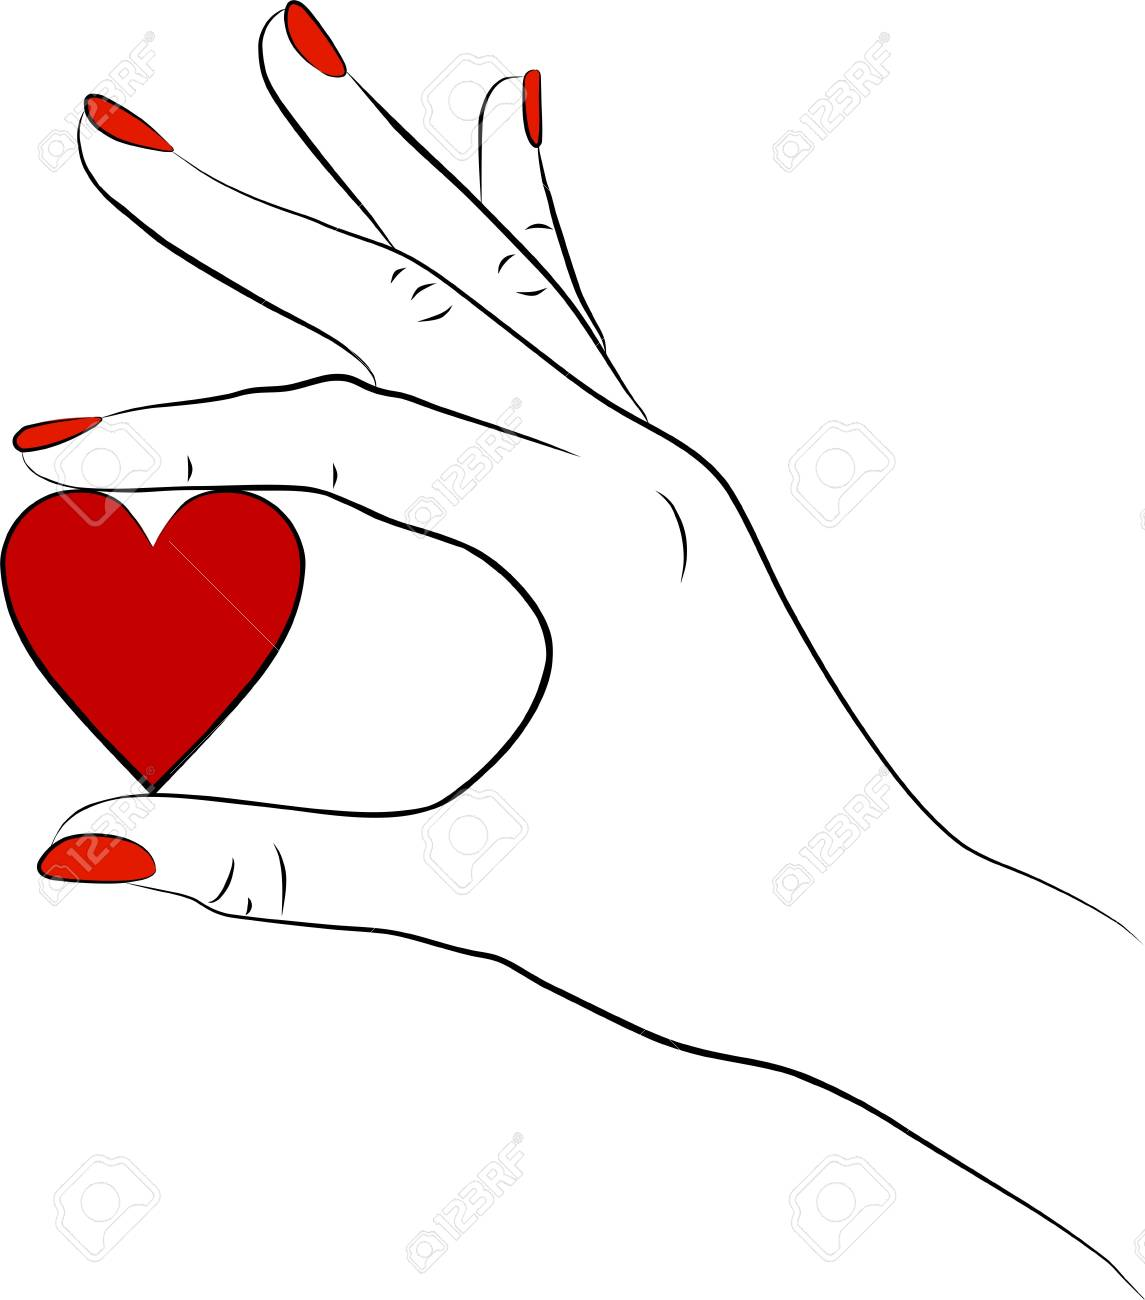 woman hand with a red heart Stock Photo - 12418414